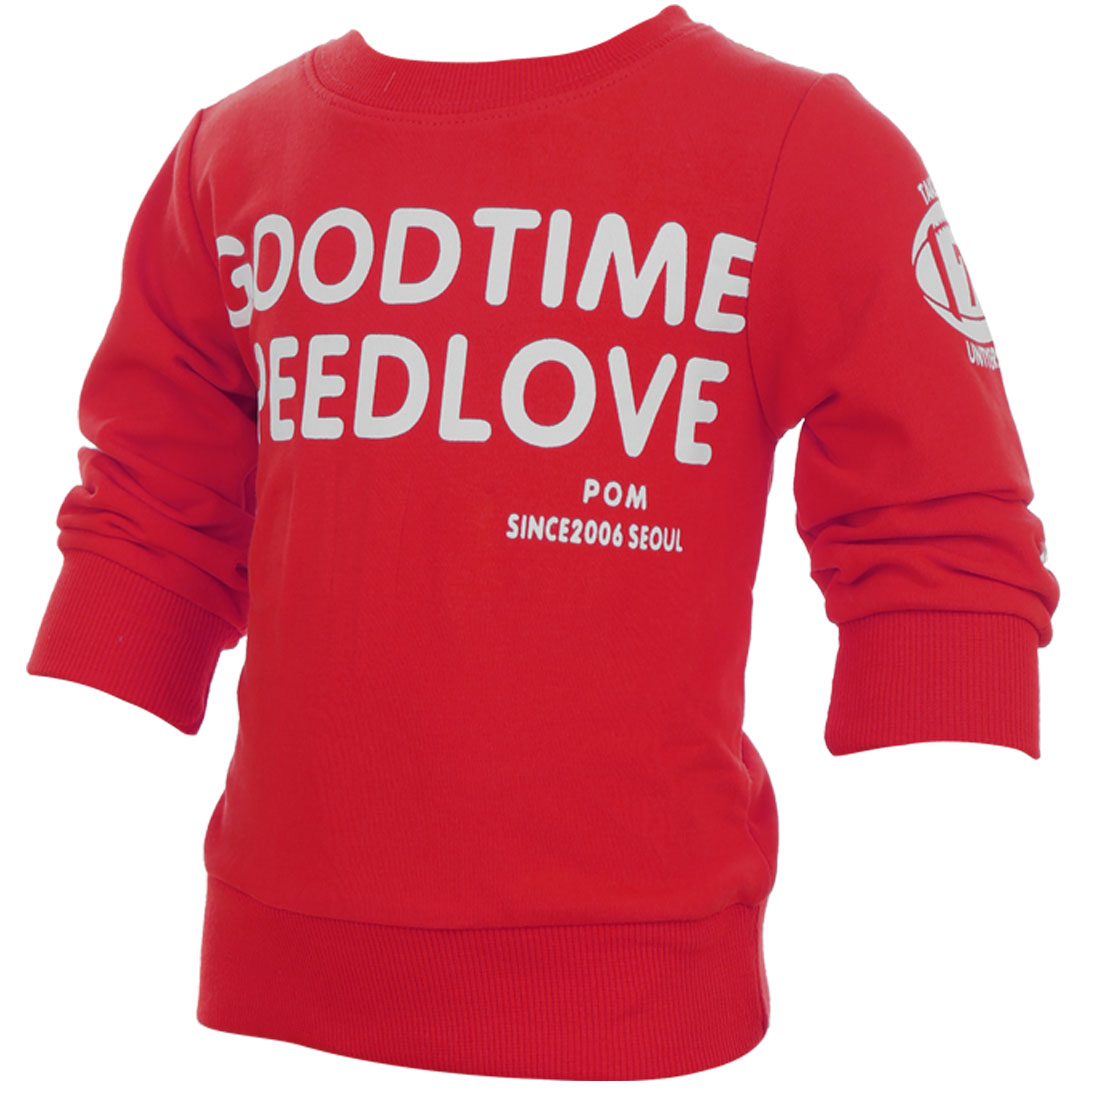 Kids Lovely Red Color Letters Prints Design Casual Spring Tee Shirt 4T